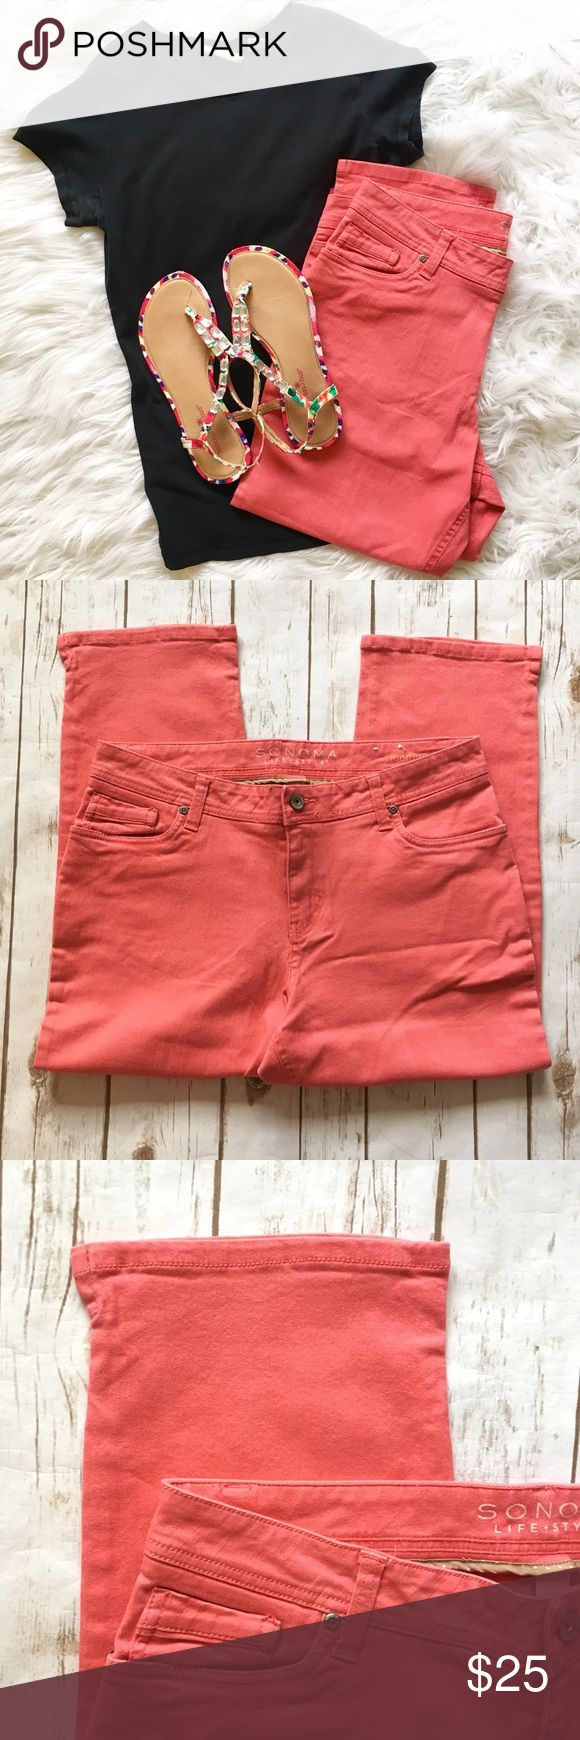 """Coral Capris from Sonoma☀️ Good condition coral capris from Sonoma. The style is modern fit and size 12. Capris do have small slits on the side of both legs. Fabric content is 98% cotton and 2% spandex   Measurements approximately: 🎀Leg Opening laying flat: 8""""  🎀Waist: 34""""  🎀Inseam: 24""""  🎀Front Rise: 10.5""""  🎀Back Rise: 15"""" Sonoma Pants Capris"""